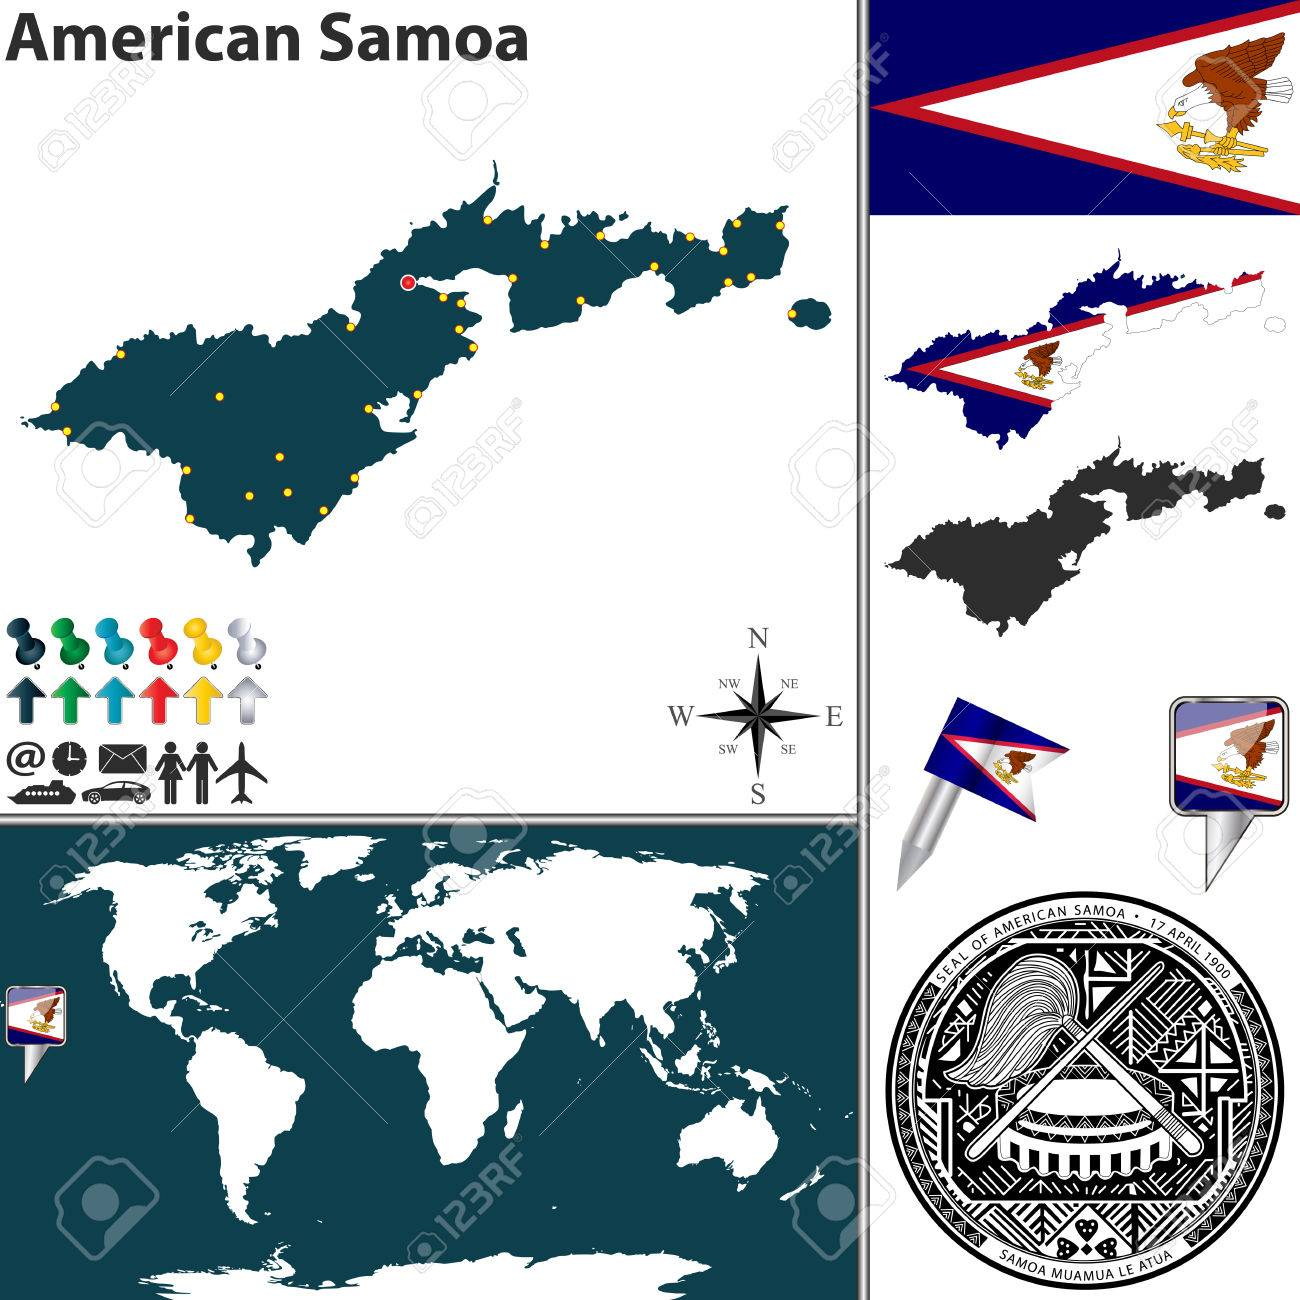 Vector Map Of American Samoa With Coat Of Arms And Location On ...